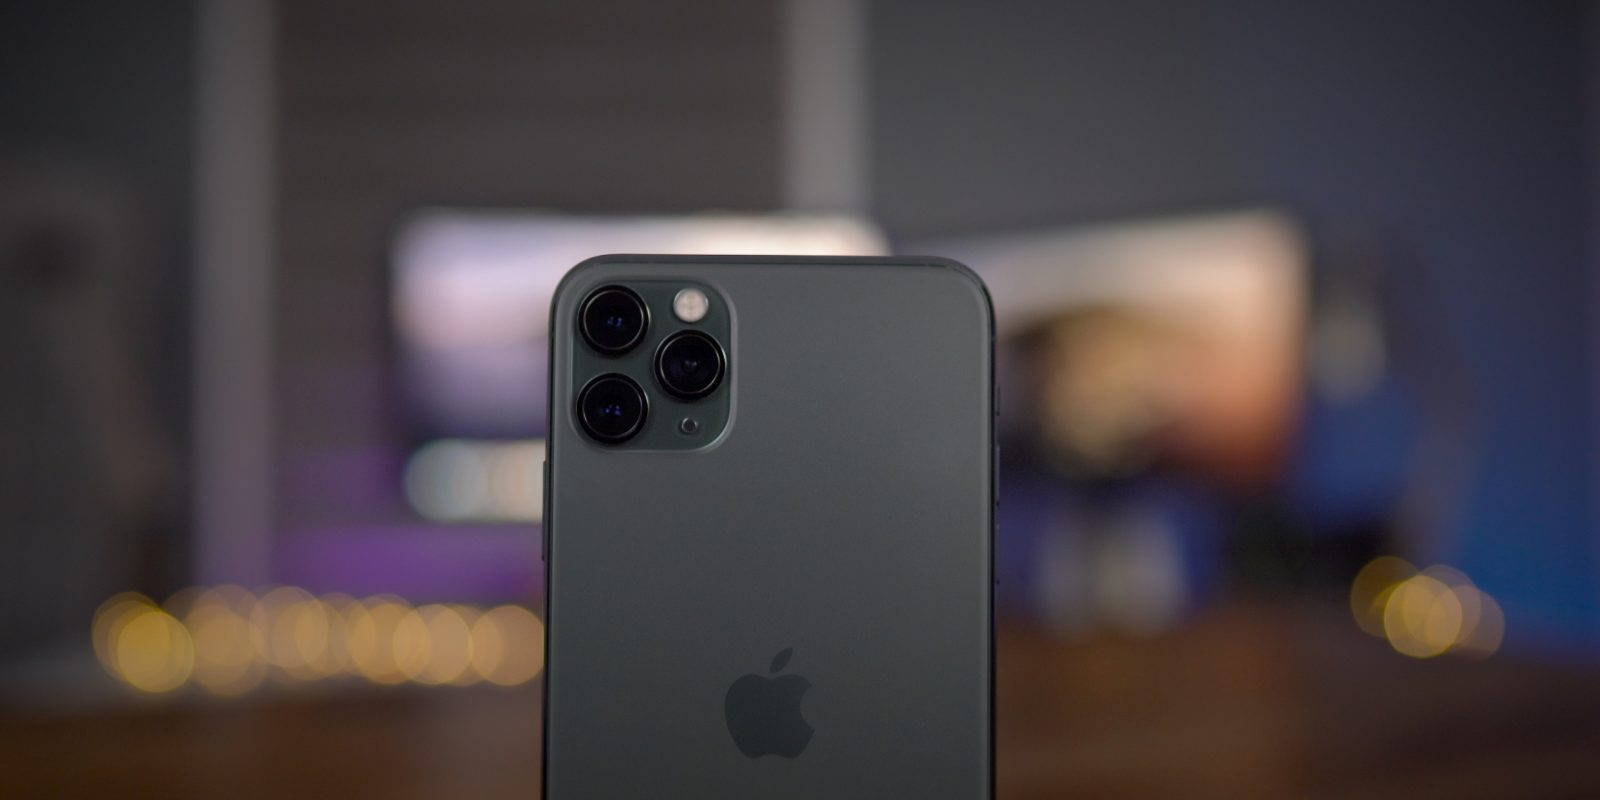 Apple blocks downgrades to iOS 13.2 after update fixes background app performance